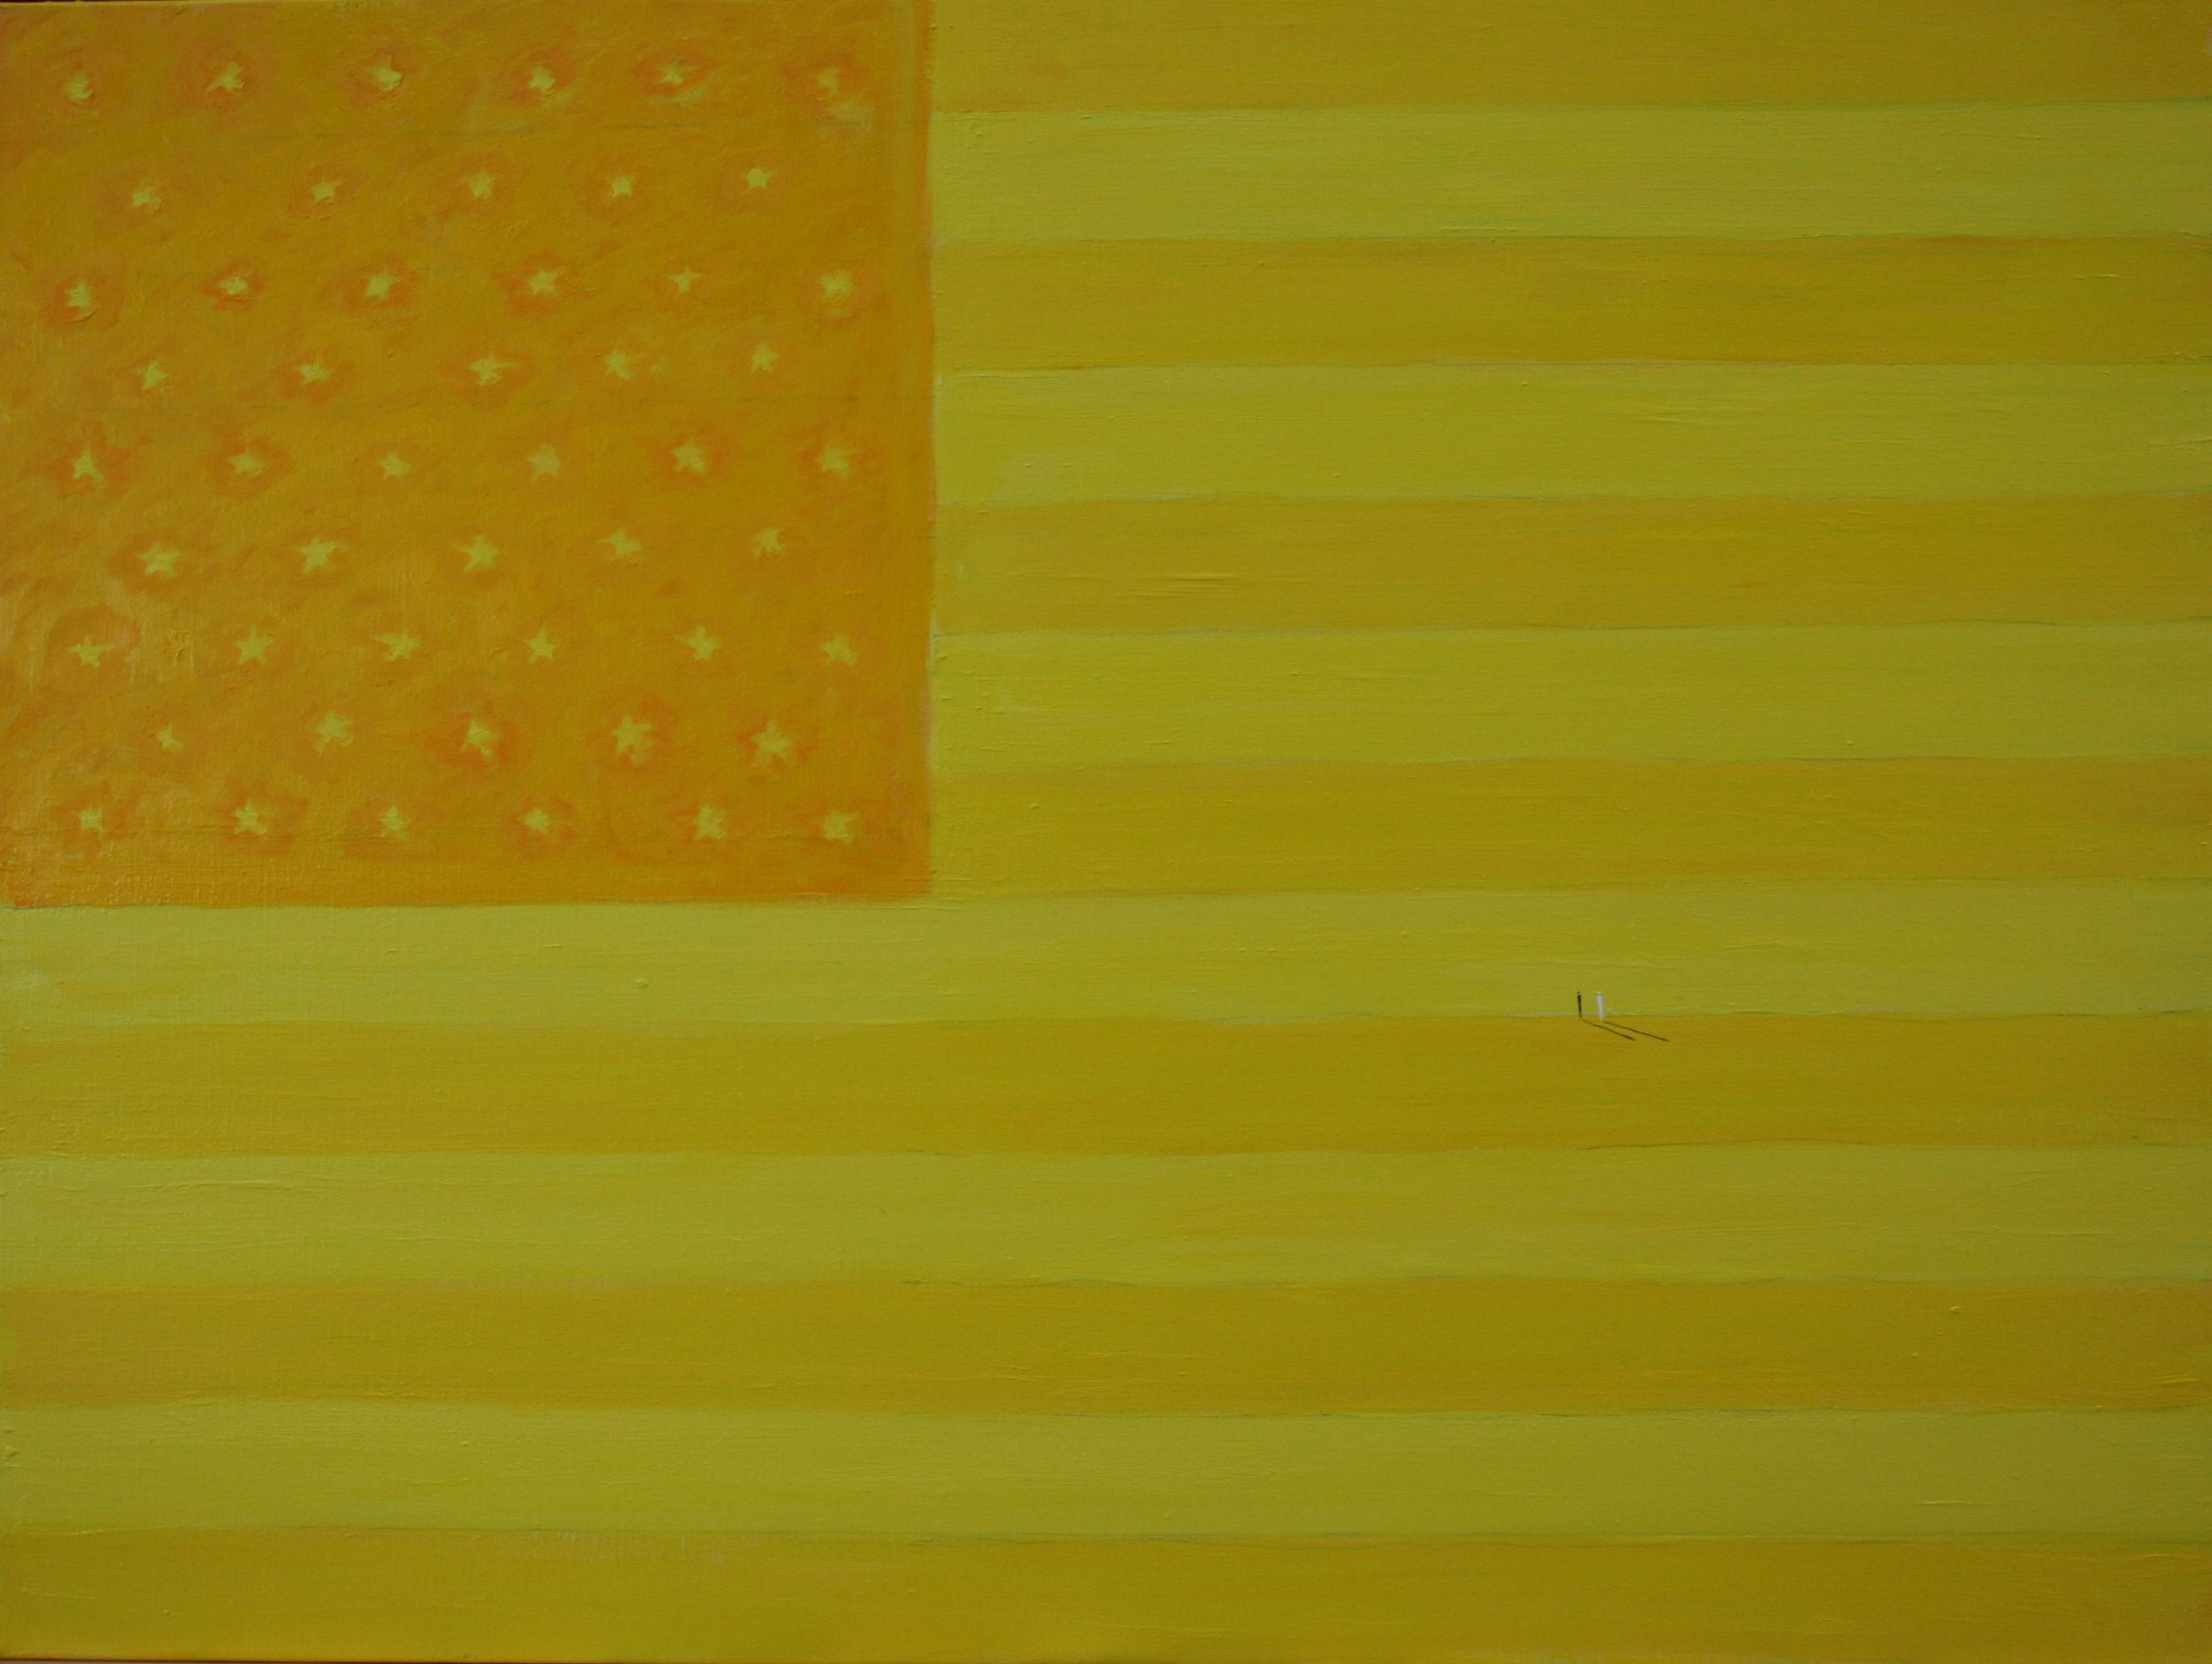 Yellow Flag, 75x100cm(1).JPG